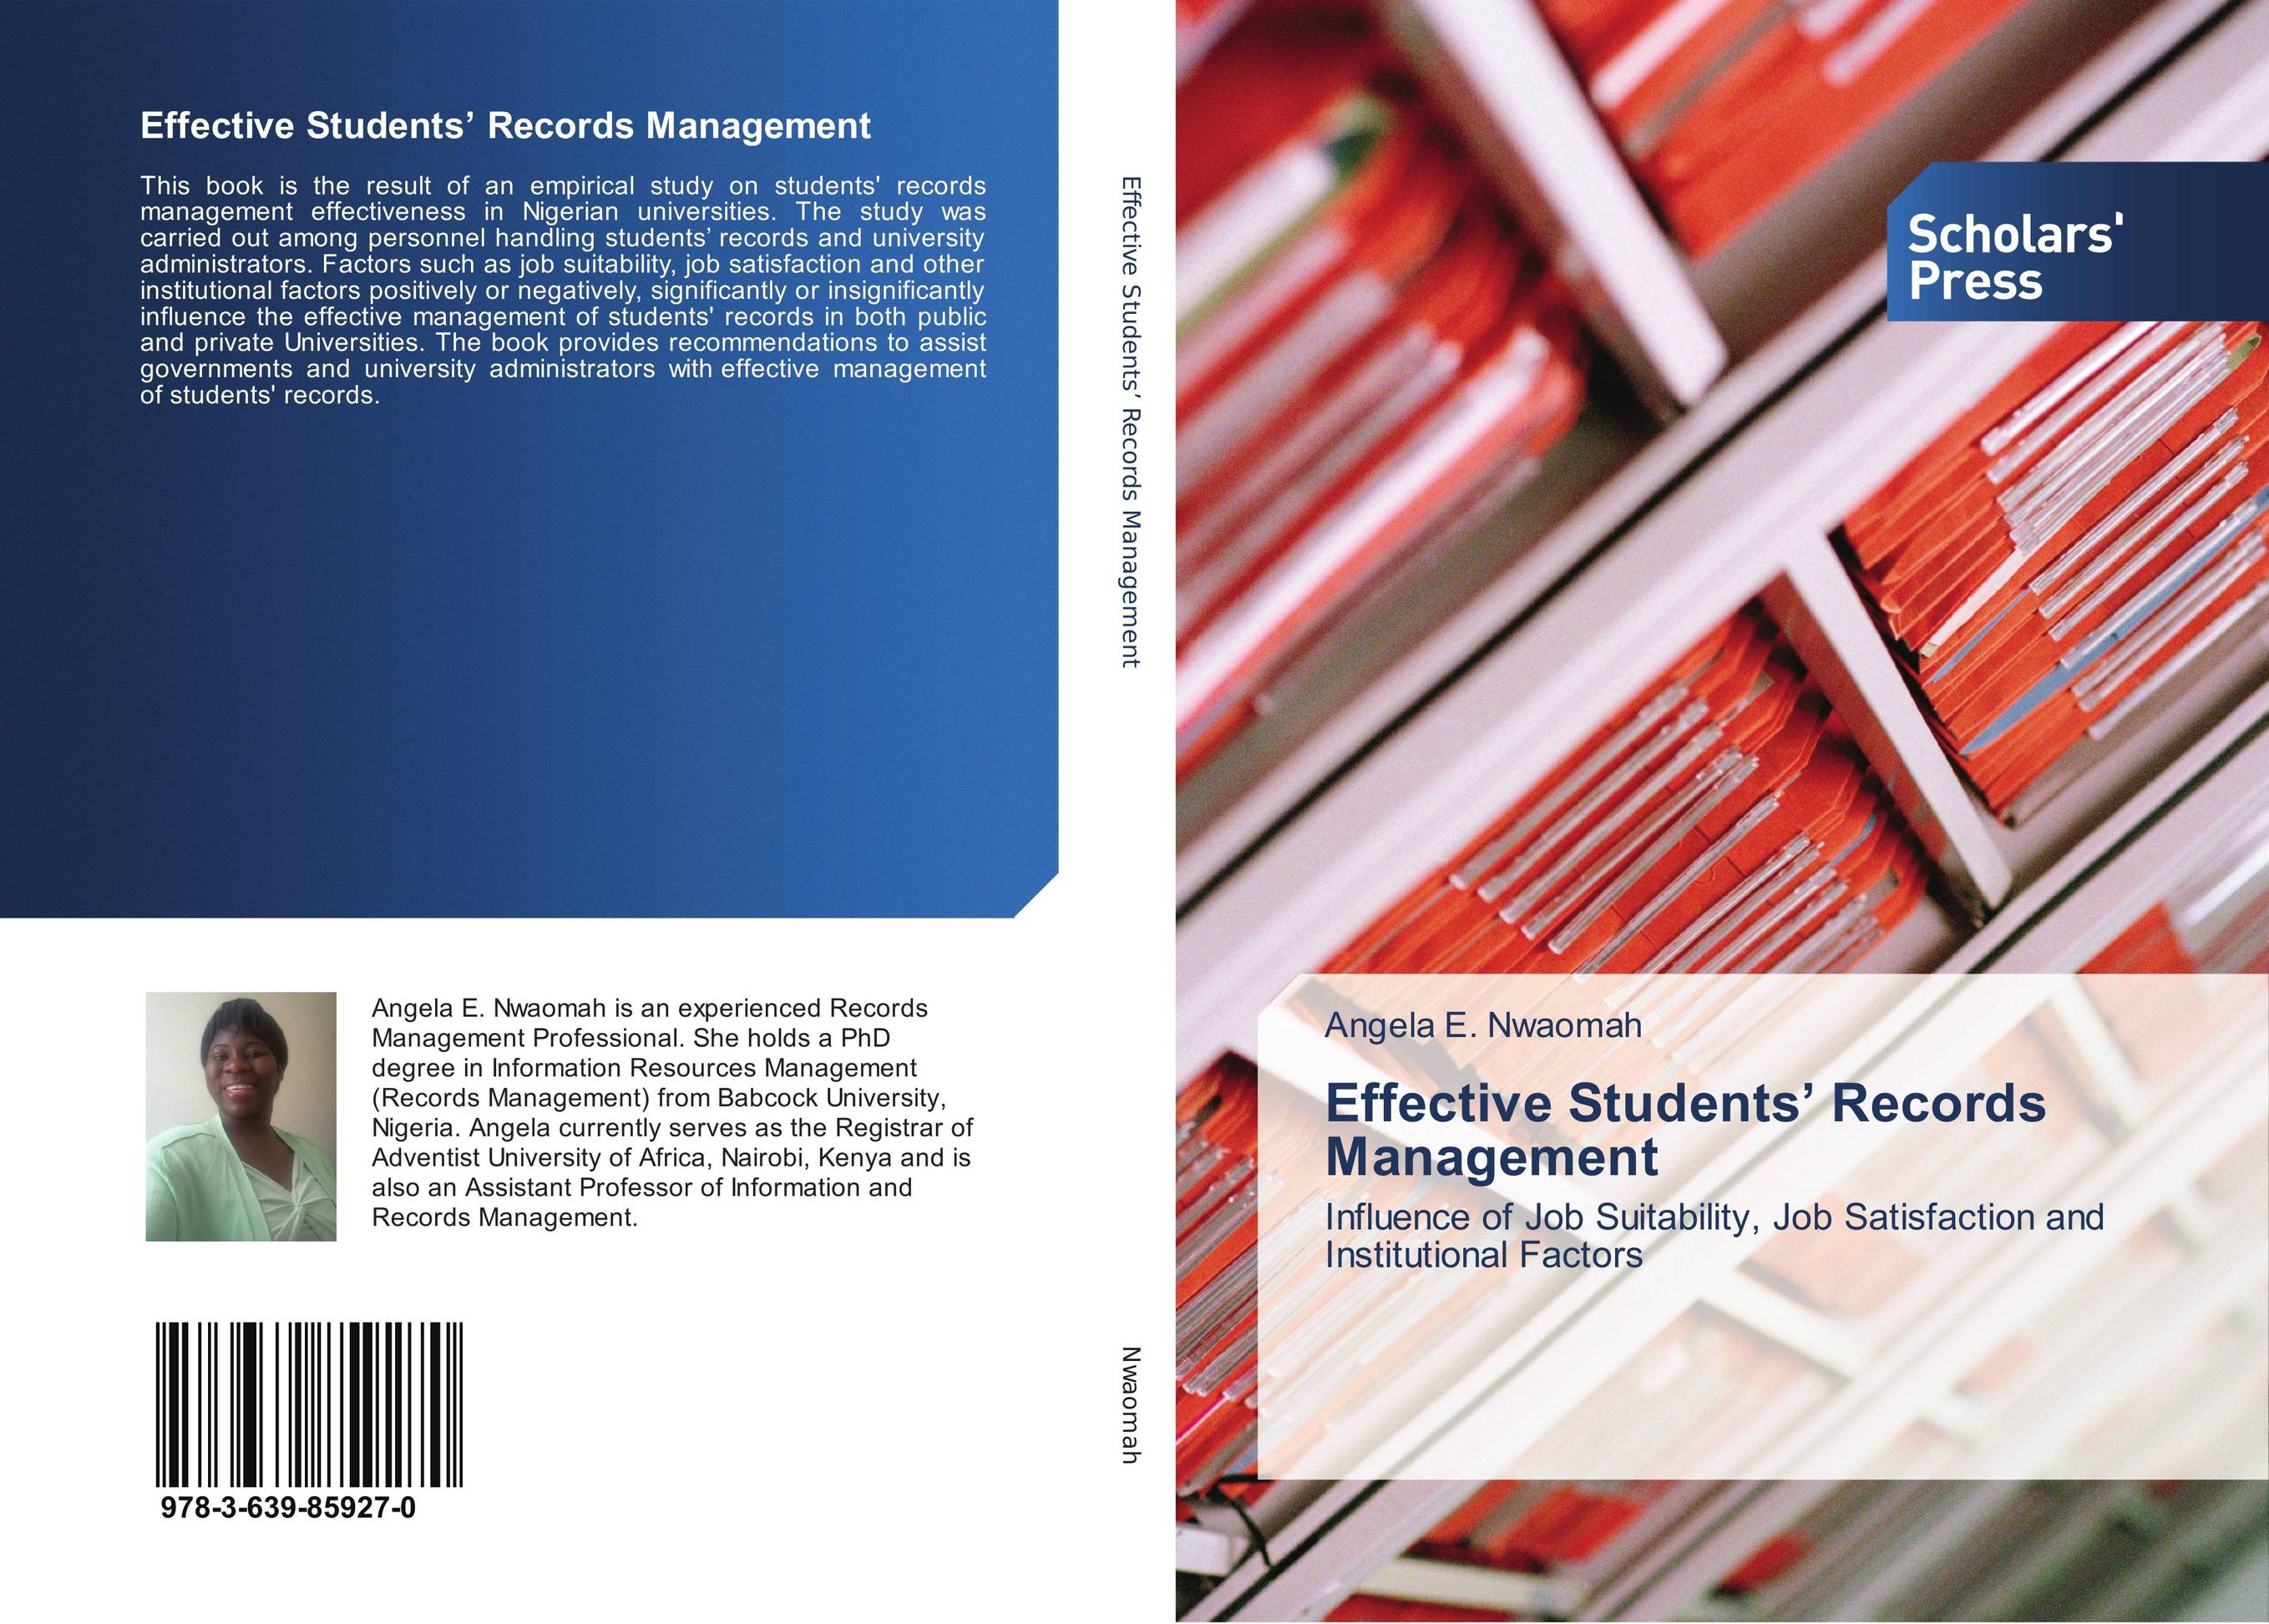 Effective Students' Records Management dieting practices among ahfad university for women students